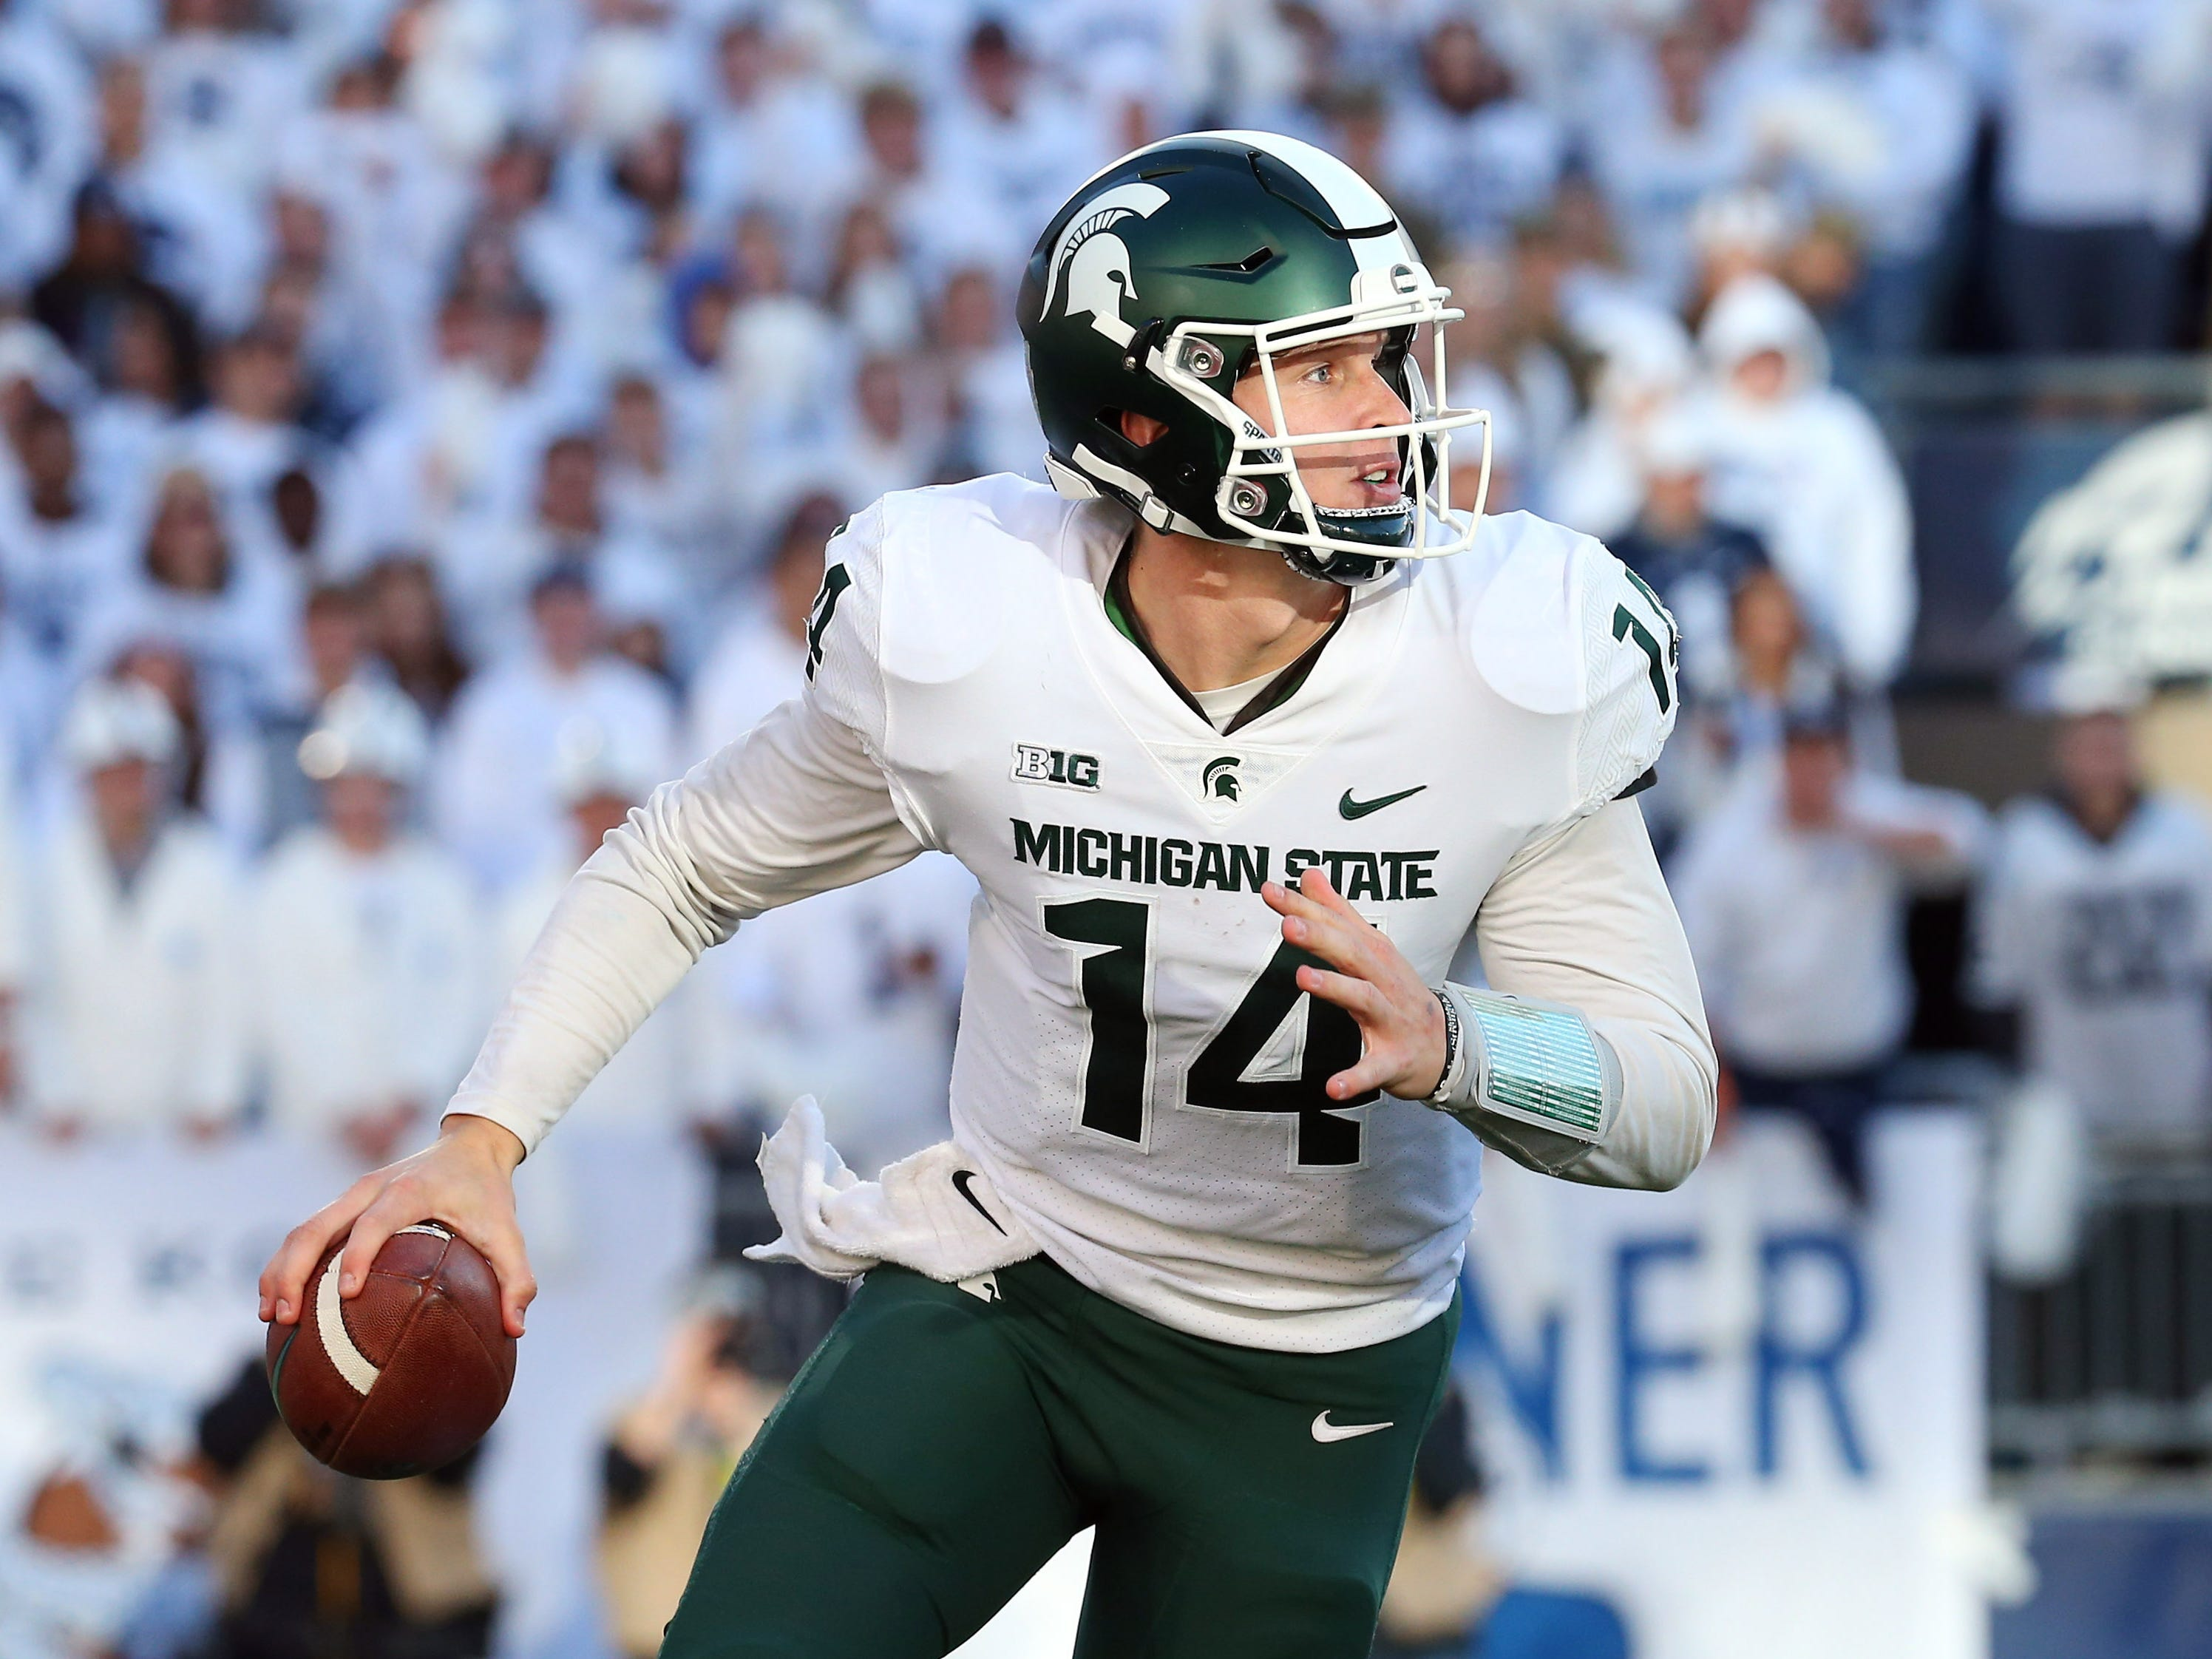 Michigan State Spartans quarterback Brian Lewerke (14) runs with the ball against the Penn State Nittany Lions during the second quarter at Beaver Stadium.